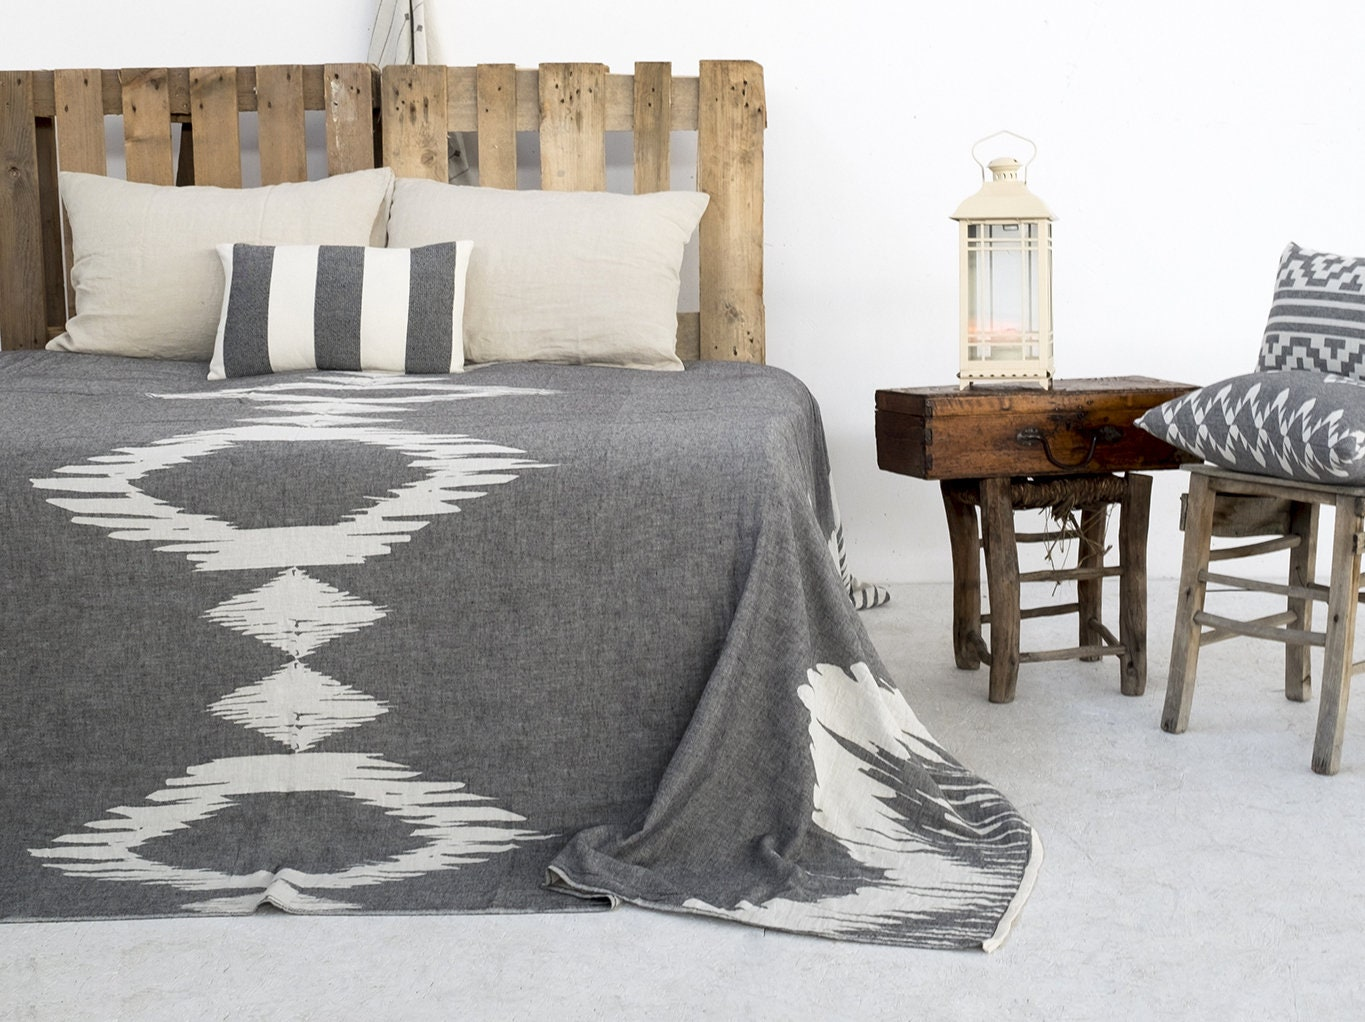 king size tagesdecke tagesdecke bettdecke k nig etsy. Black Bedroom Furniture Sets. Home Design Ideas